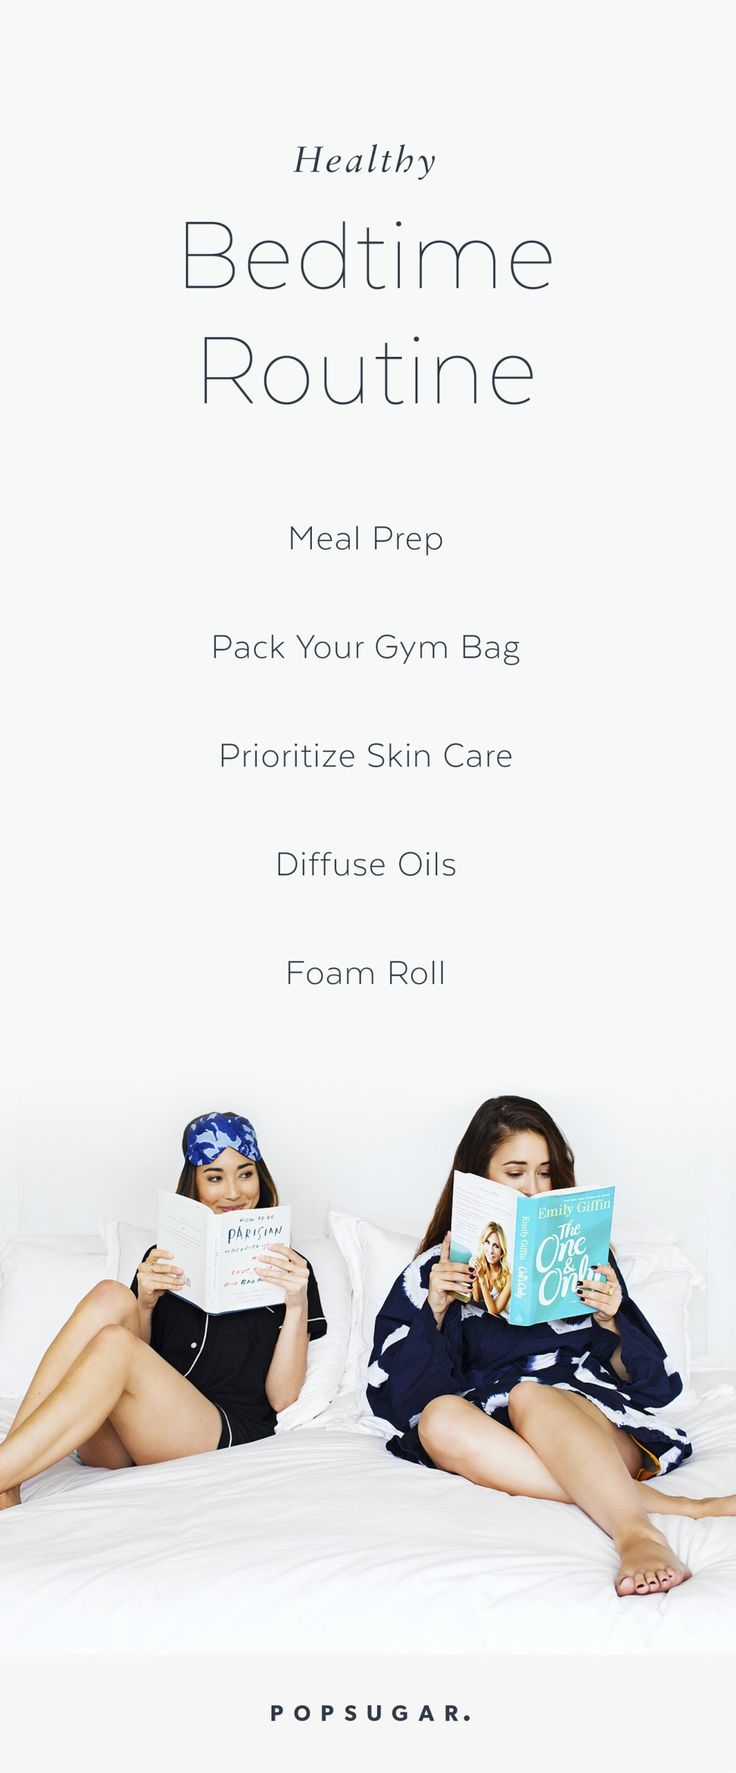 This healthy bedtime routine for women is calming, relaxing, and functional. Get ready for sleep as you wind down for your workout, and get prepared for the next morning. Add these tips into your daily schedule to help with your skin, meal prepping, and fitness — you'll be feeling your best the next day!